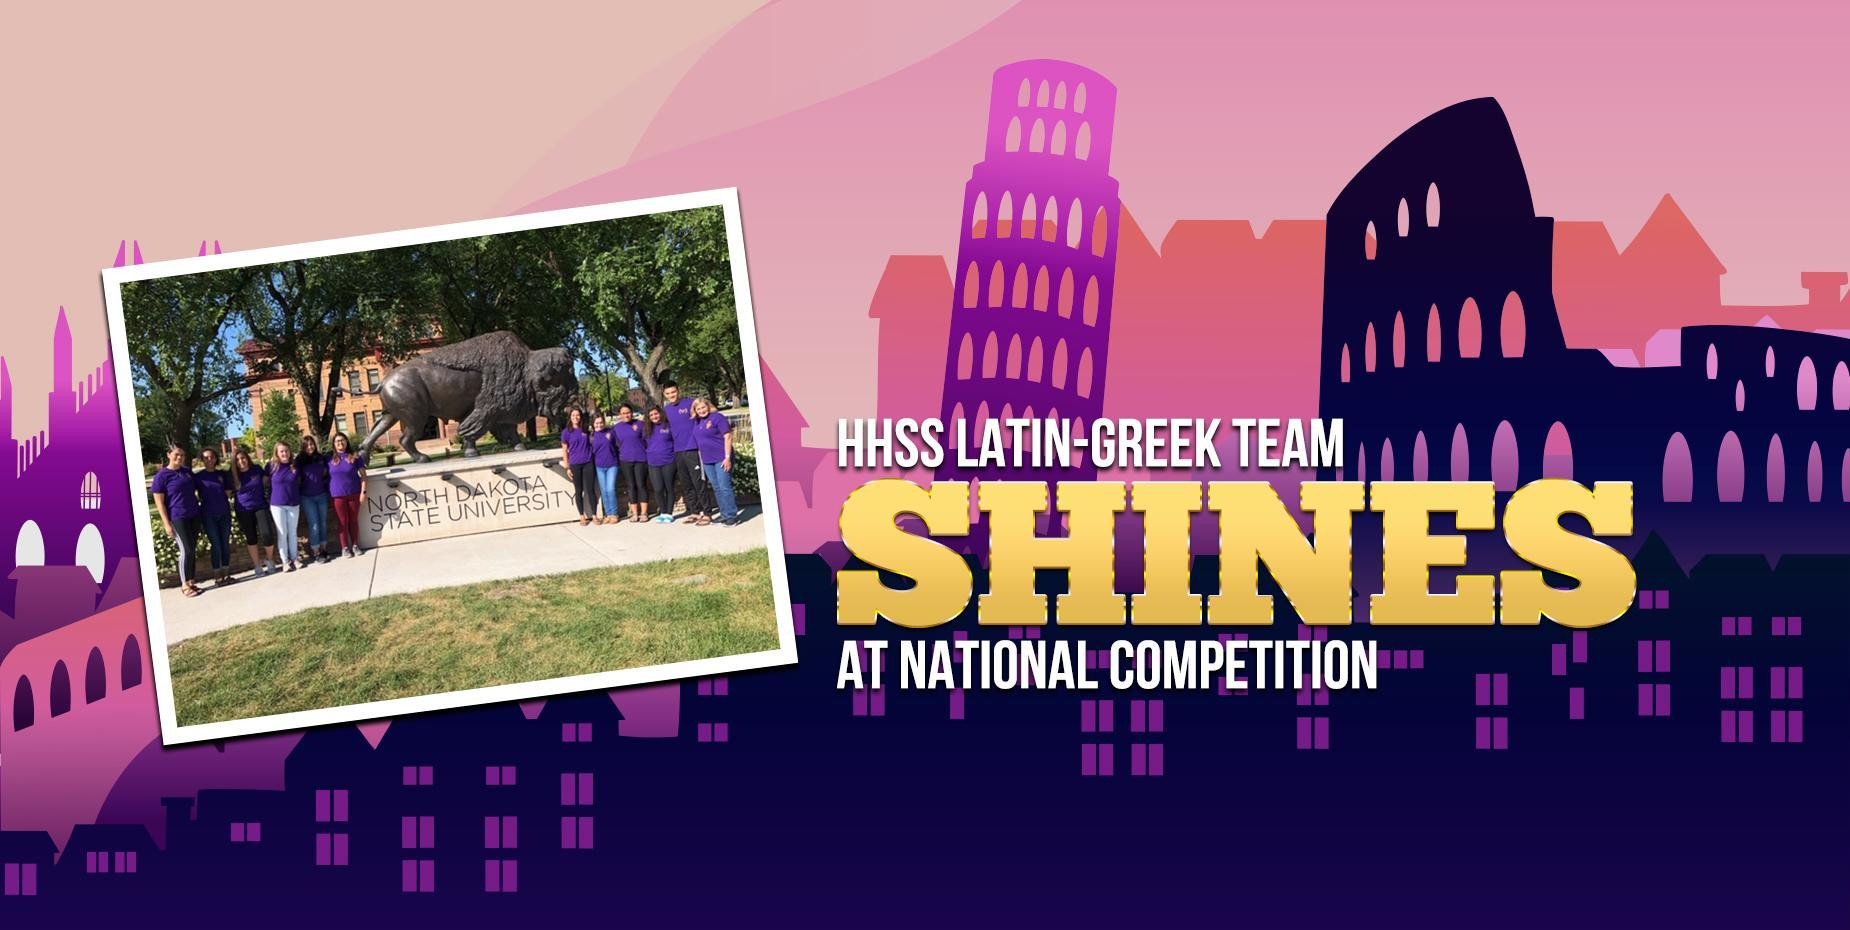 HHSS Latin-Greek Team shines at national competition